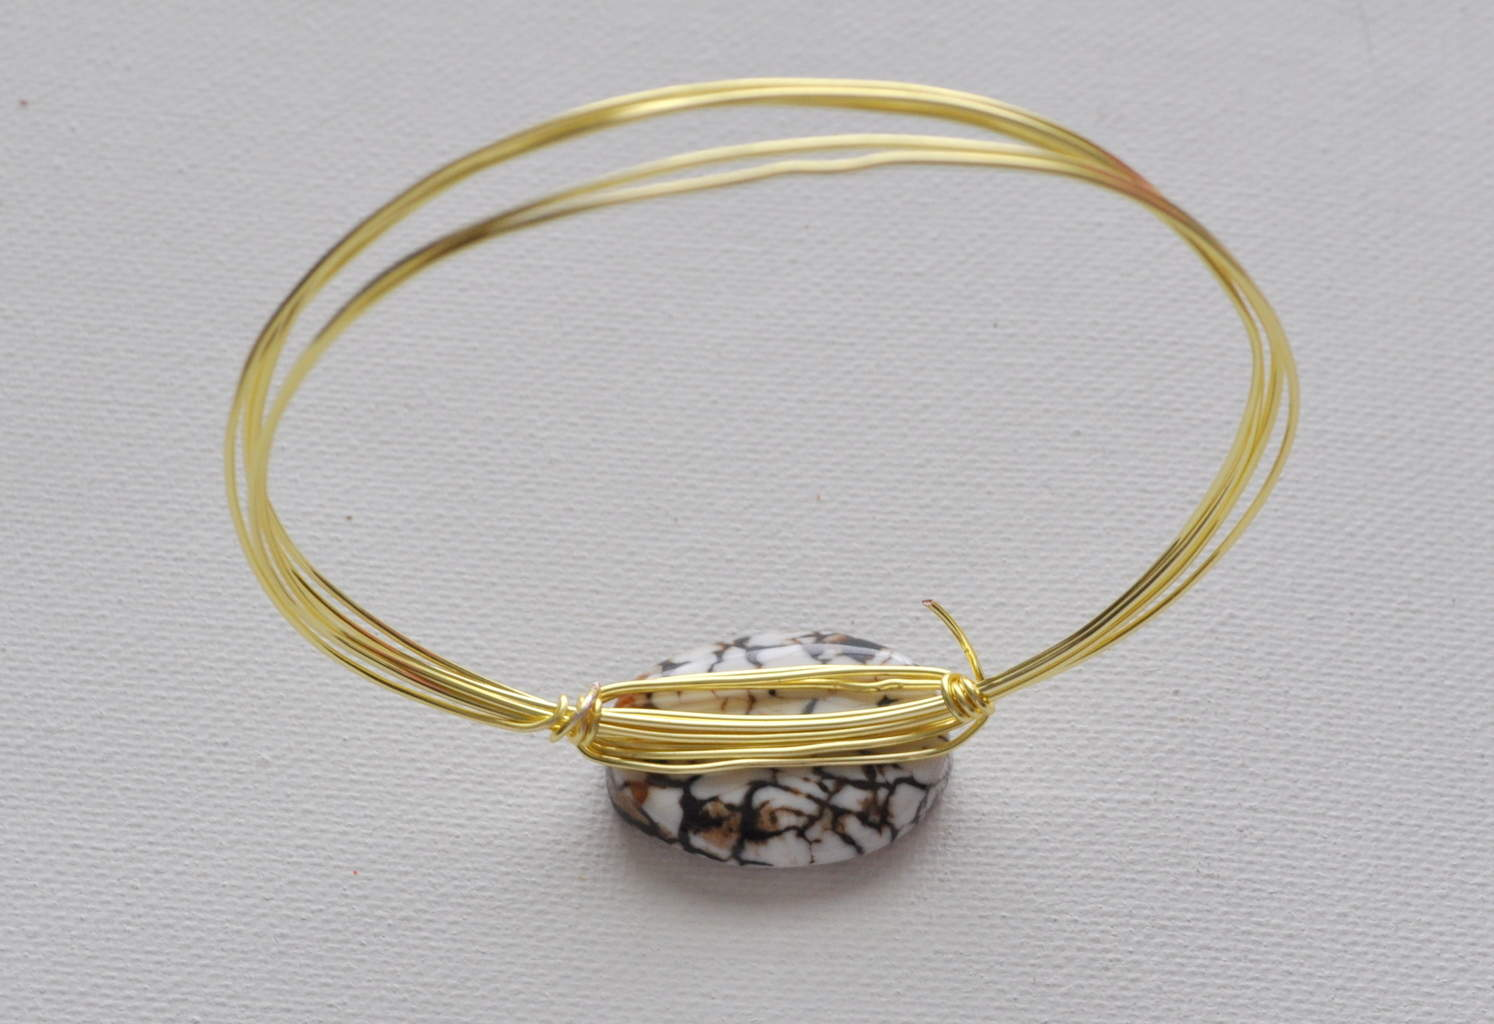 Gold, Silver and Diamond Bangle Bracelets. Bangle bracelets are all the rage. Slip-on a stack of bangles and update your look with one, two, three, or even ten bangles.